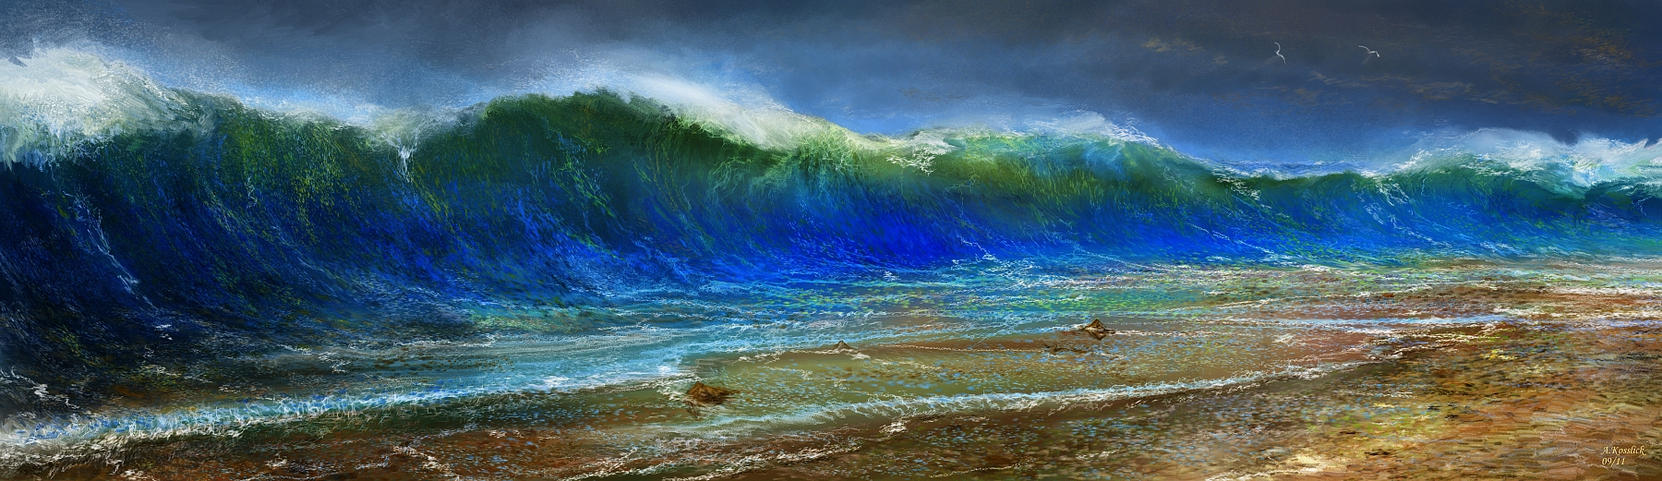 a study of waves Meditation-and-hd the practice of  monks are invaluable because the study of trained meditators can provide  types of brain waves and also contains several.